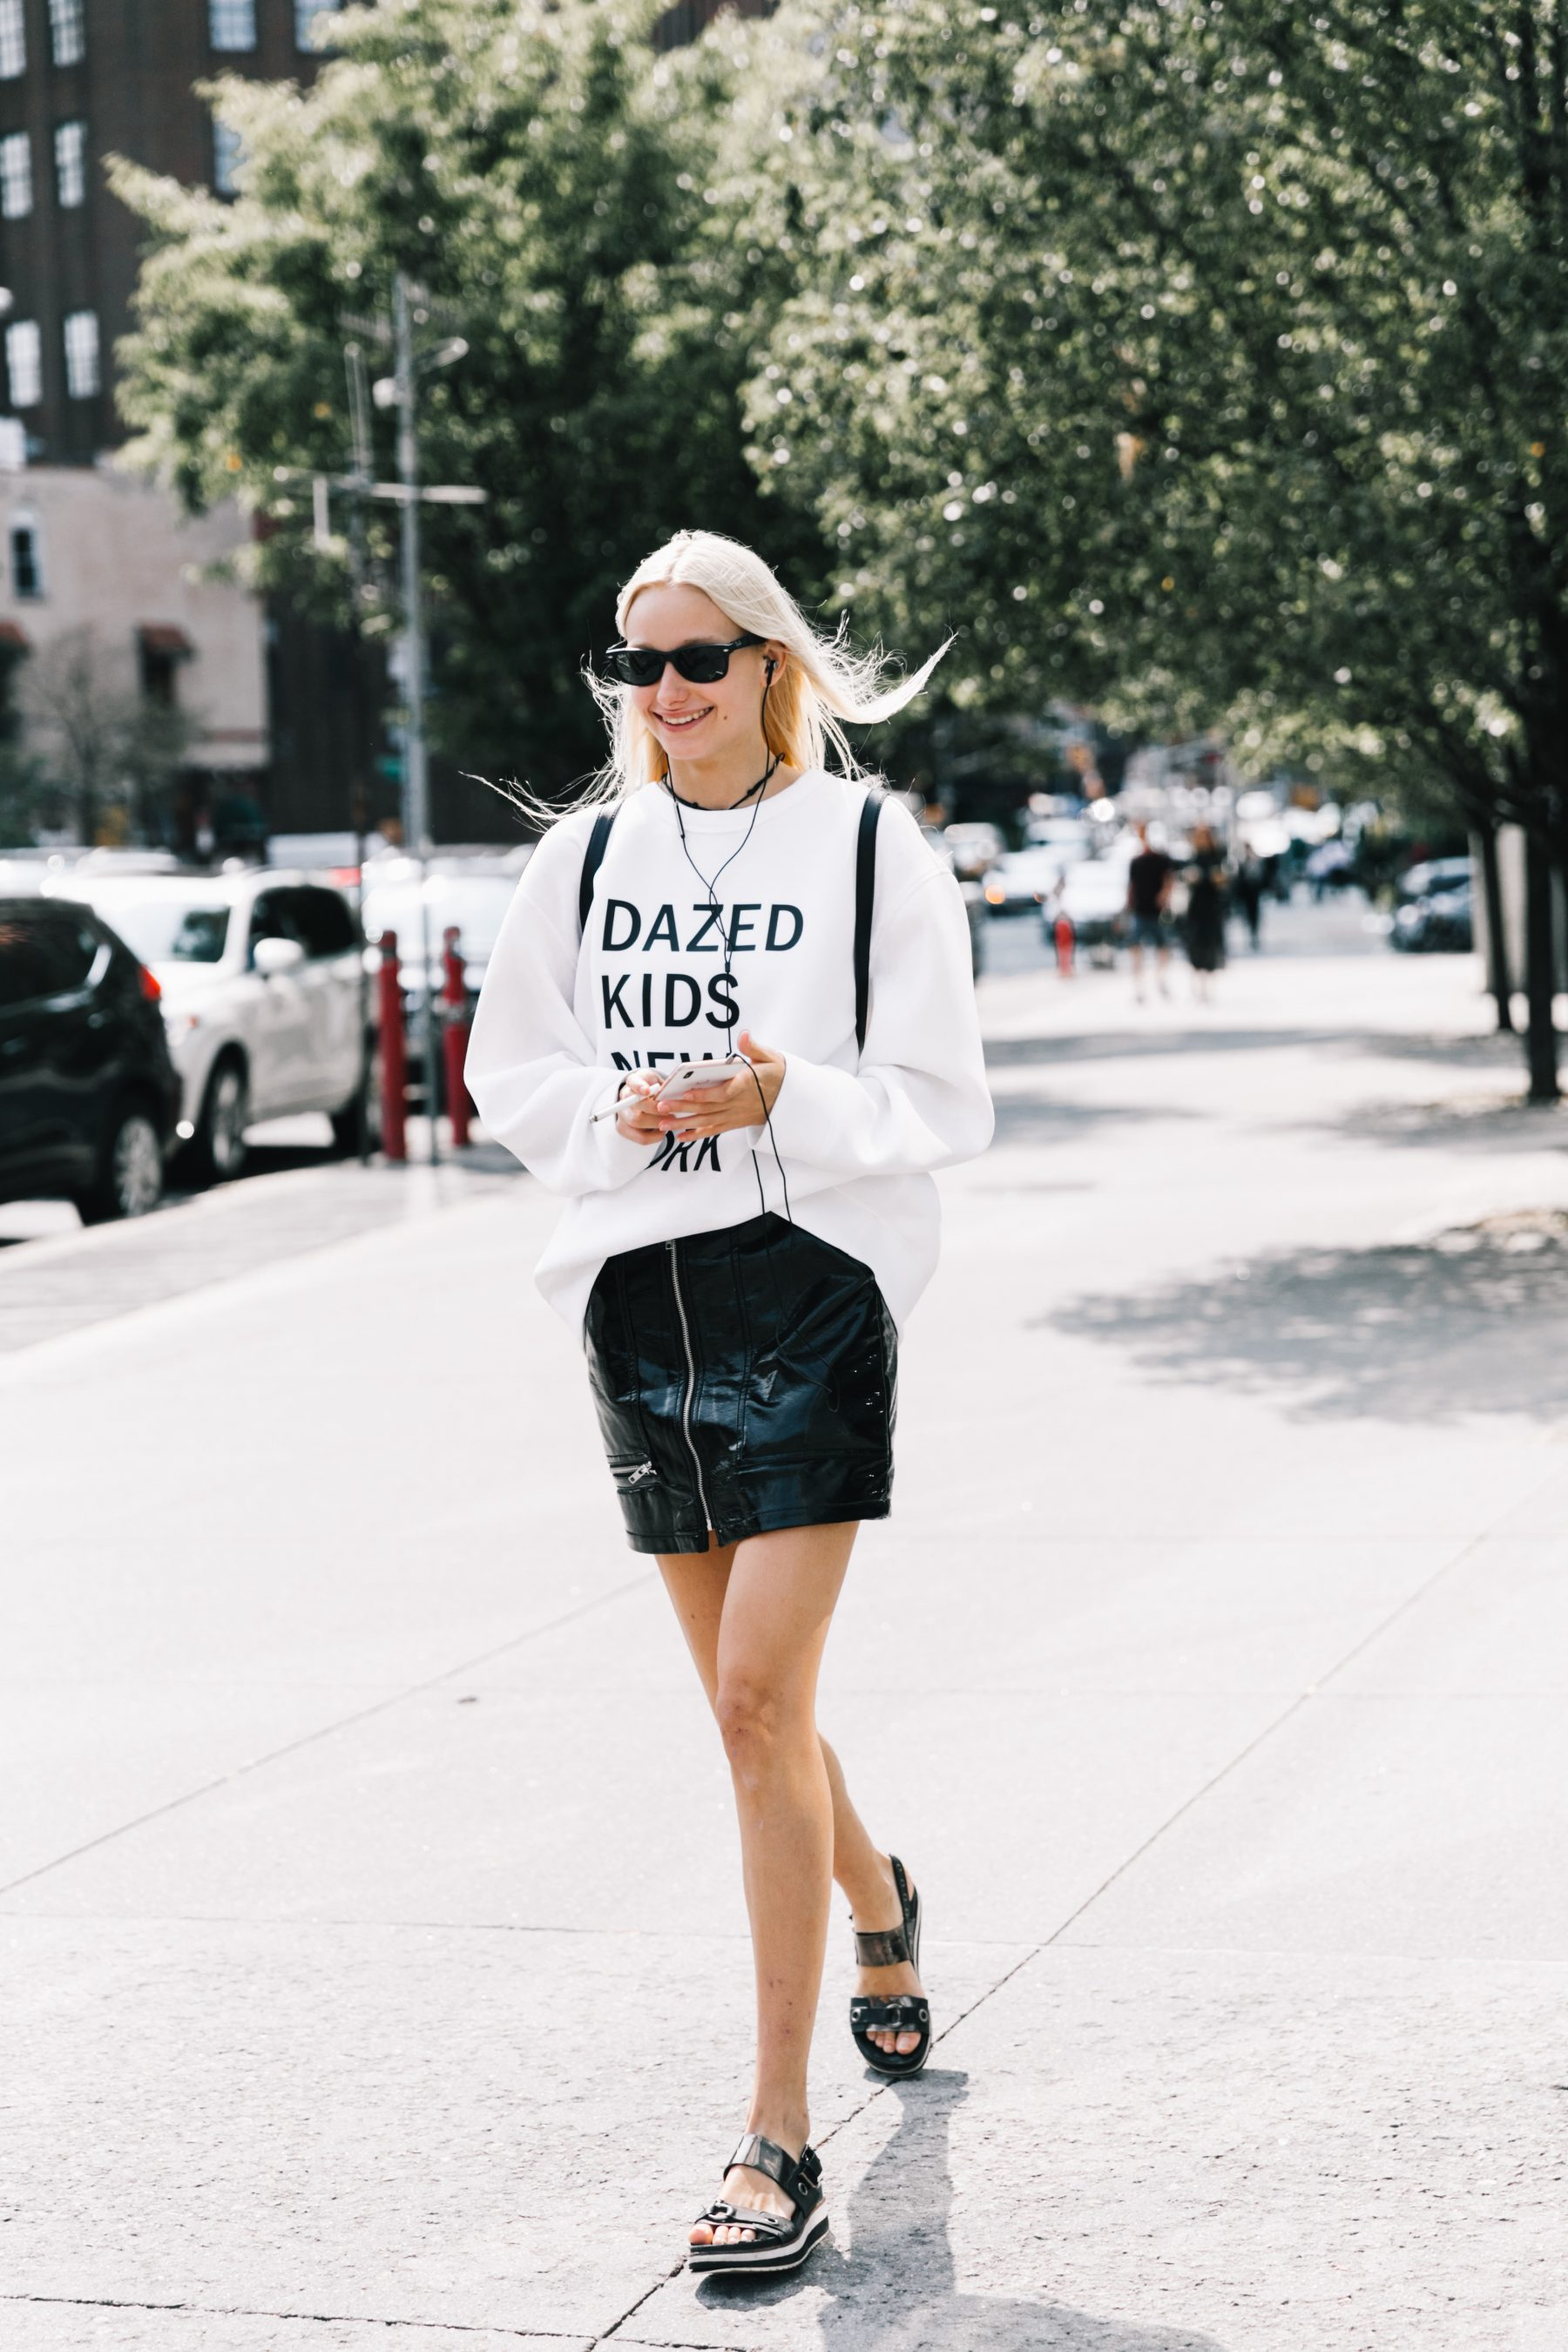 So Special Shirts That Don T Need Anything More Red Lips And Running Shoes Become The Protagonists Of Look Street Style Images On Vogue Es